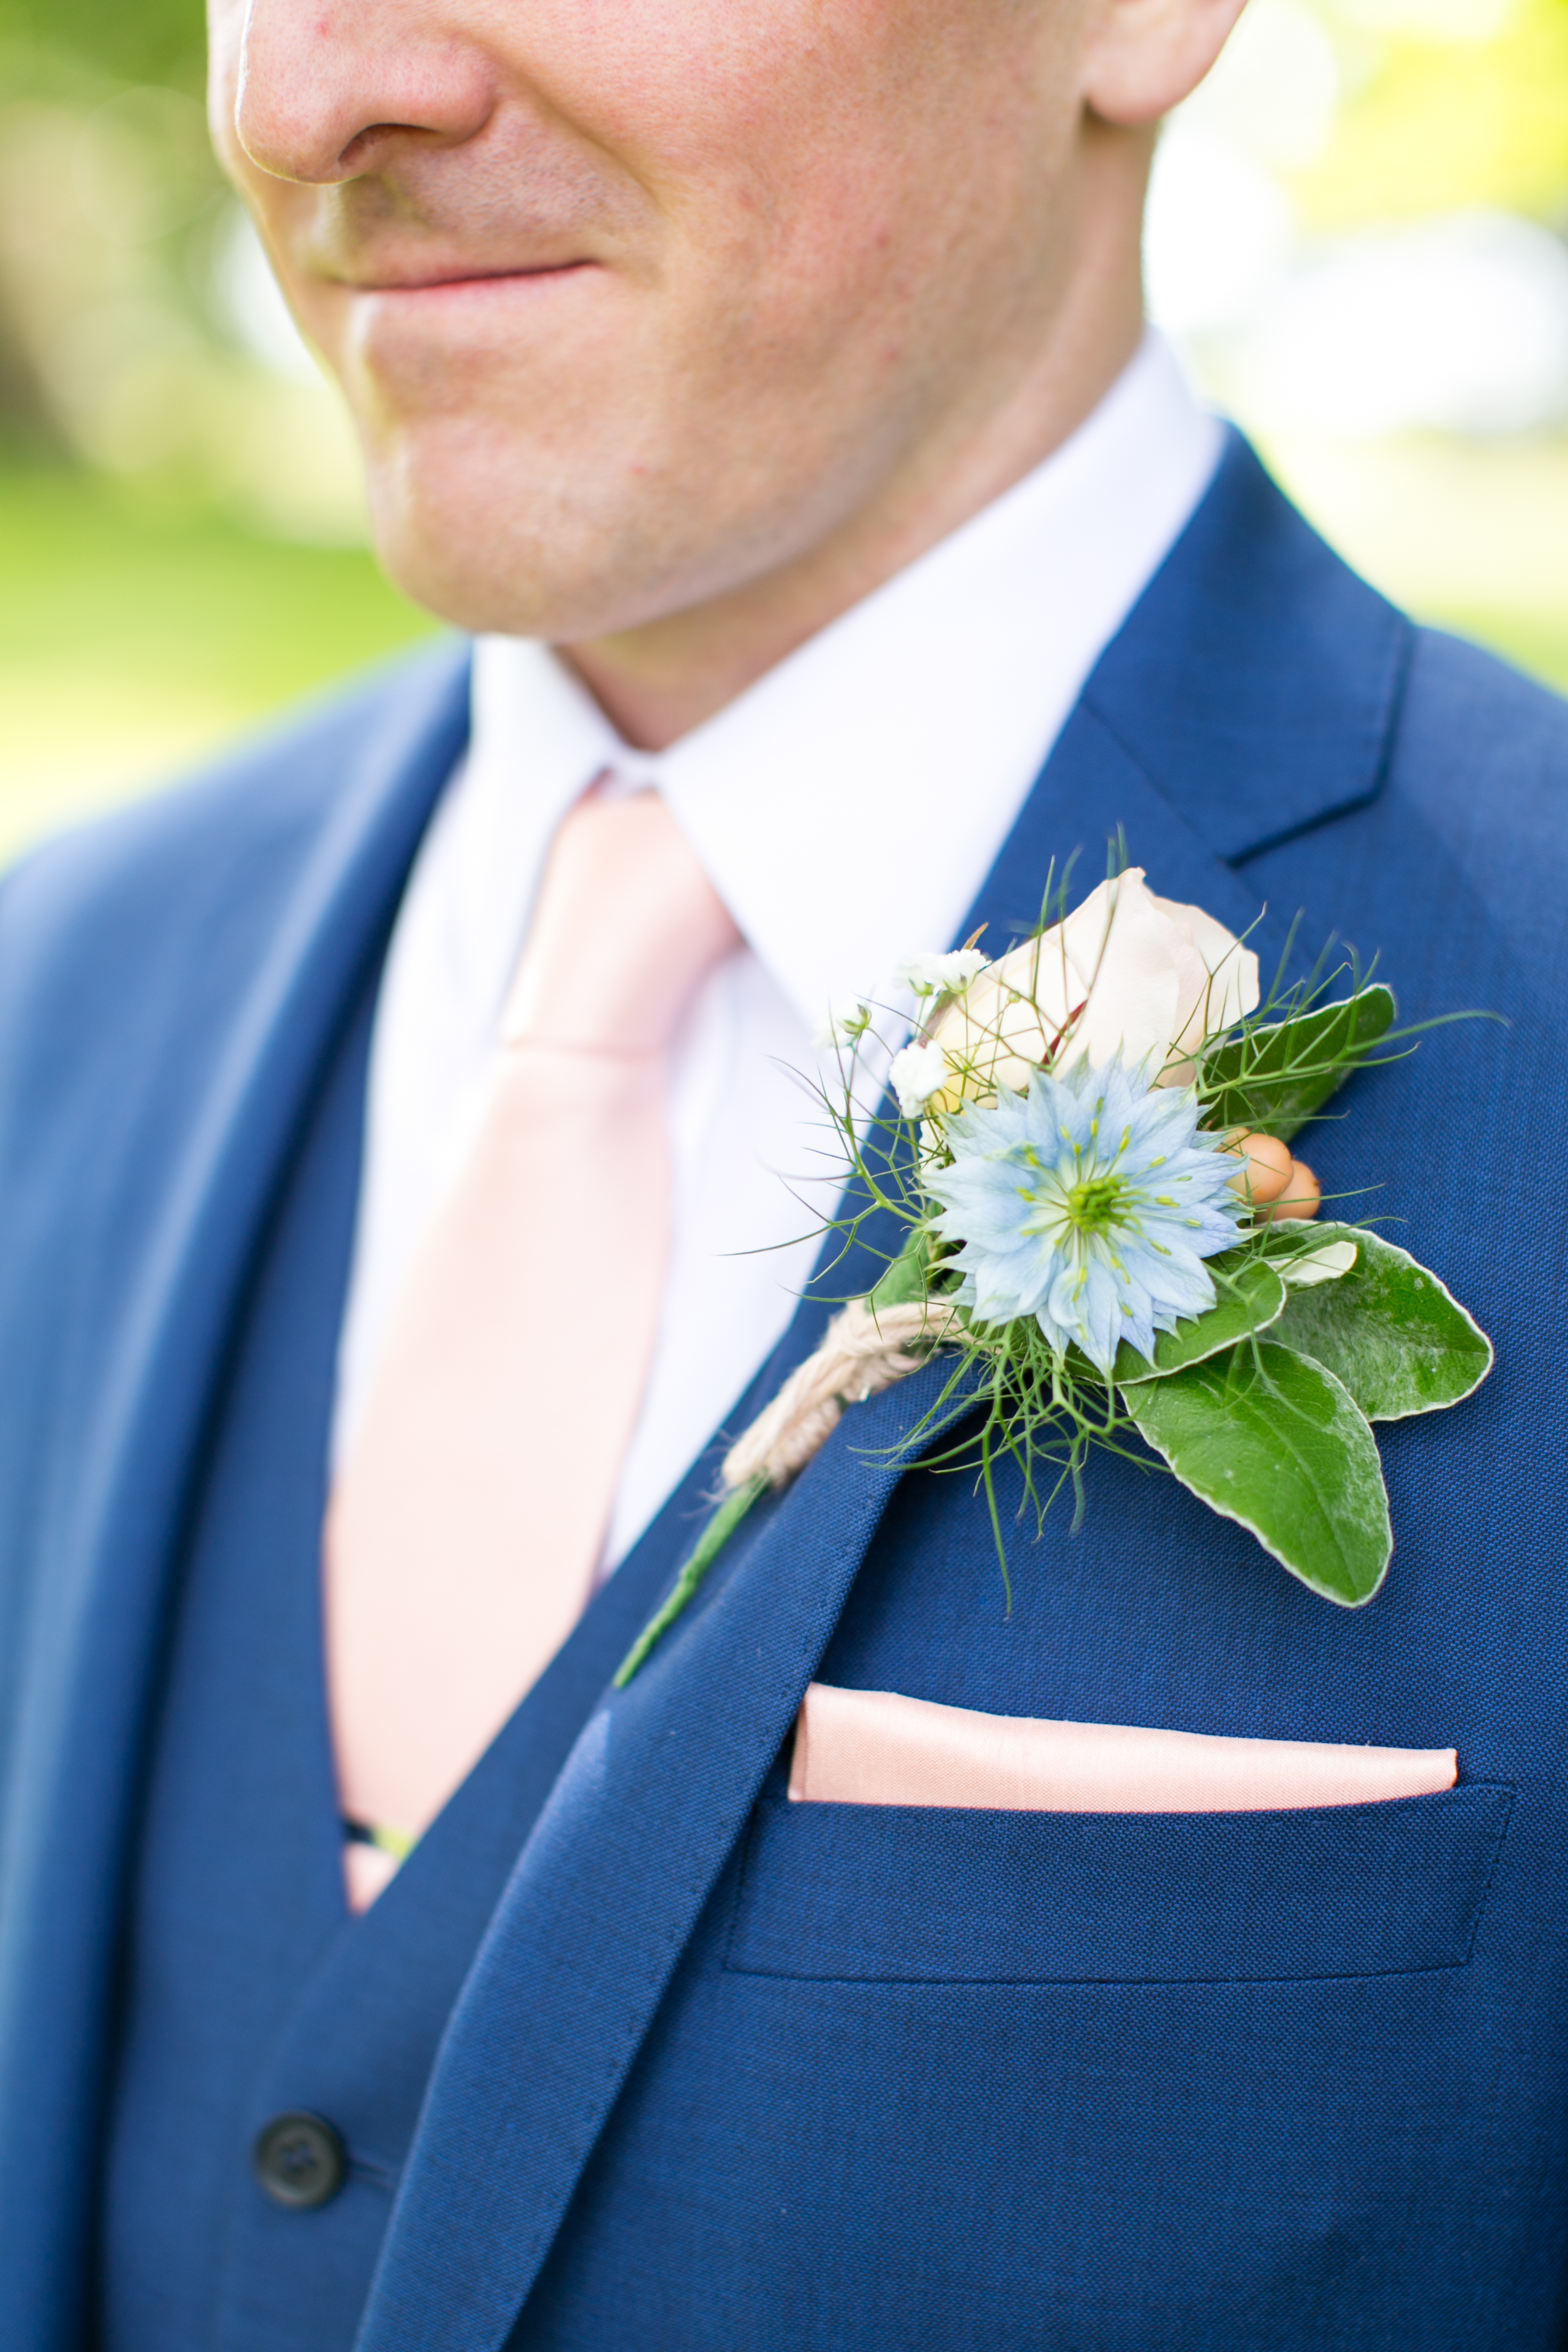 Buttonholes - one of my favourite details in any wedding is the making of these little works of art. Honestly,I could happily make these all day!